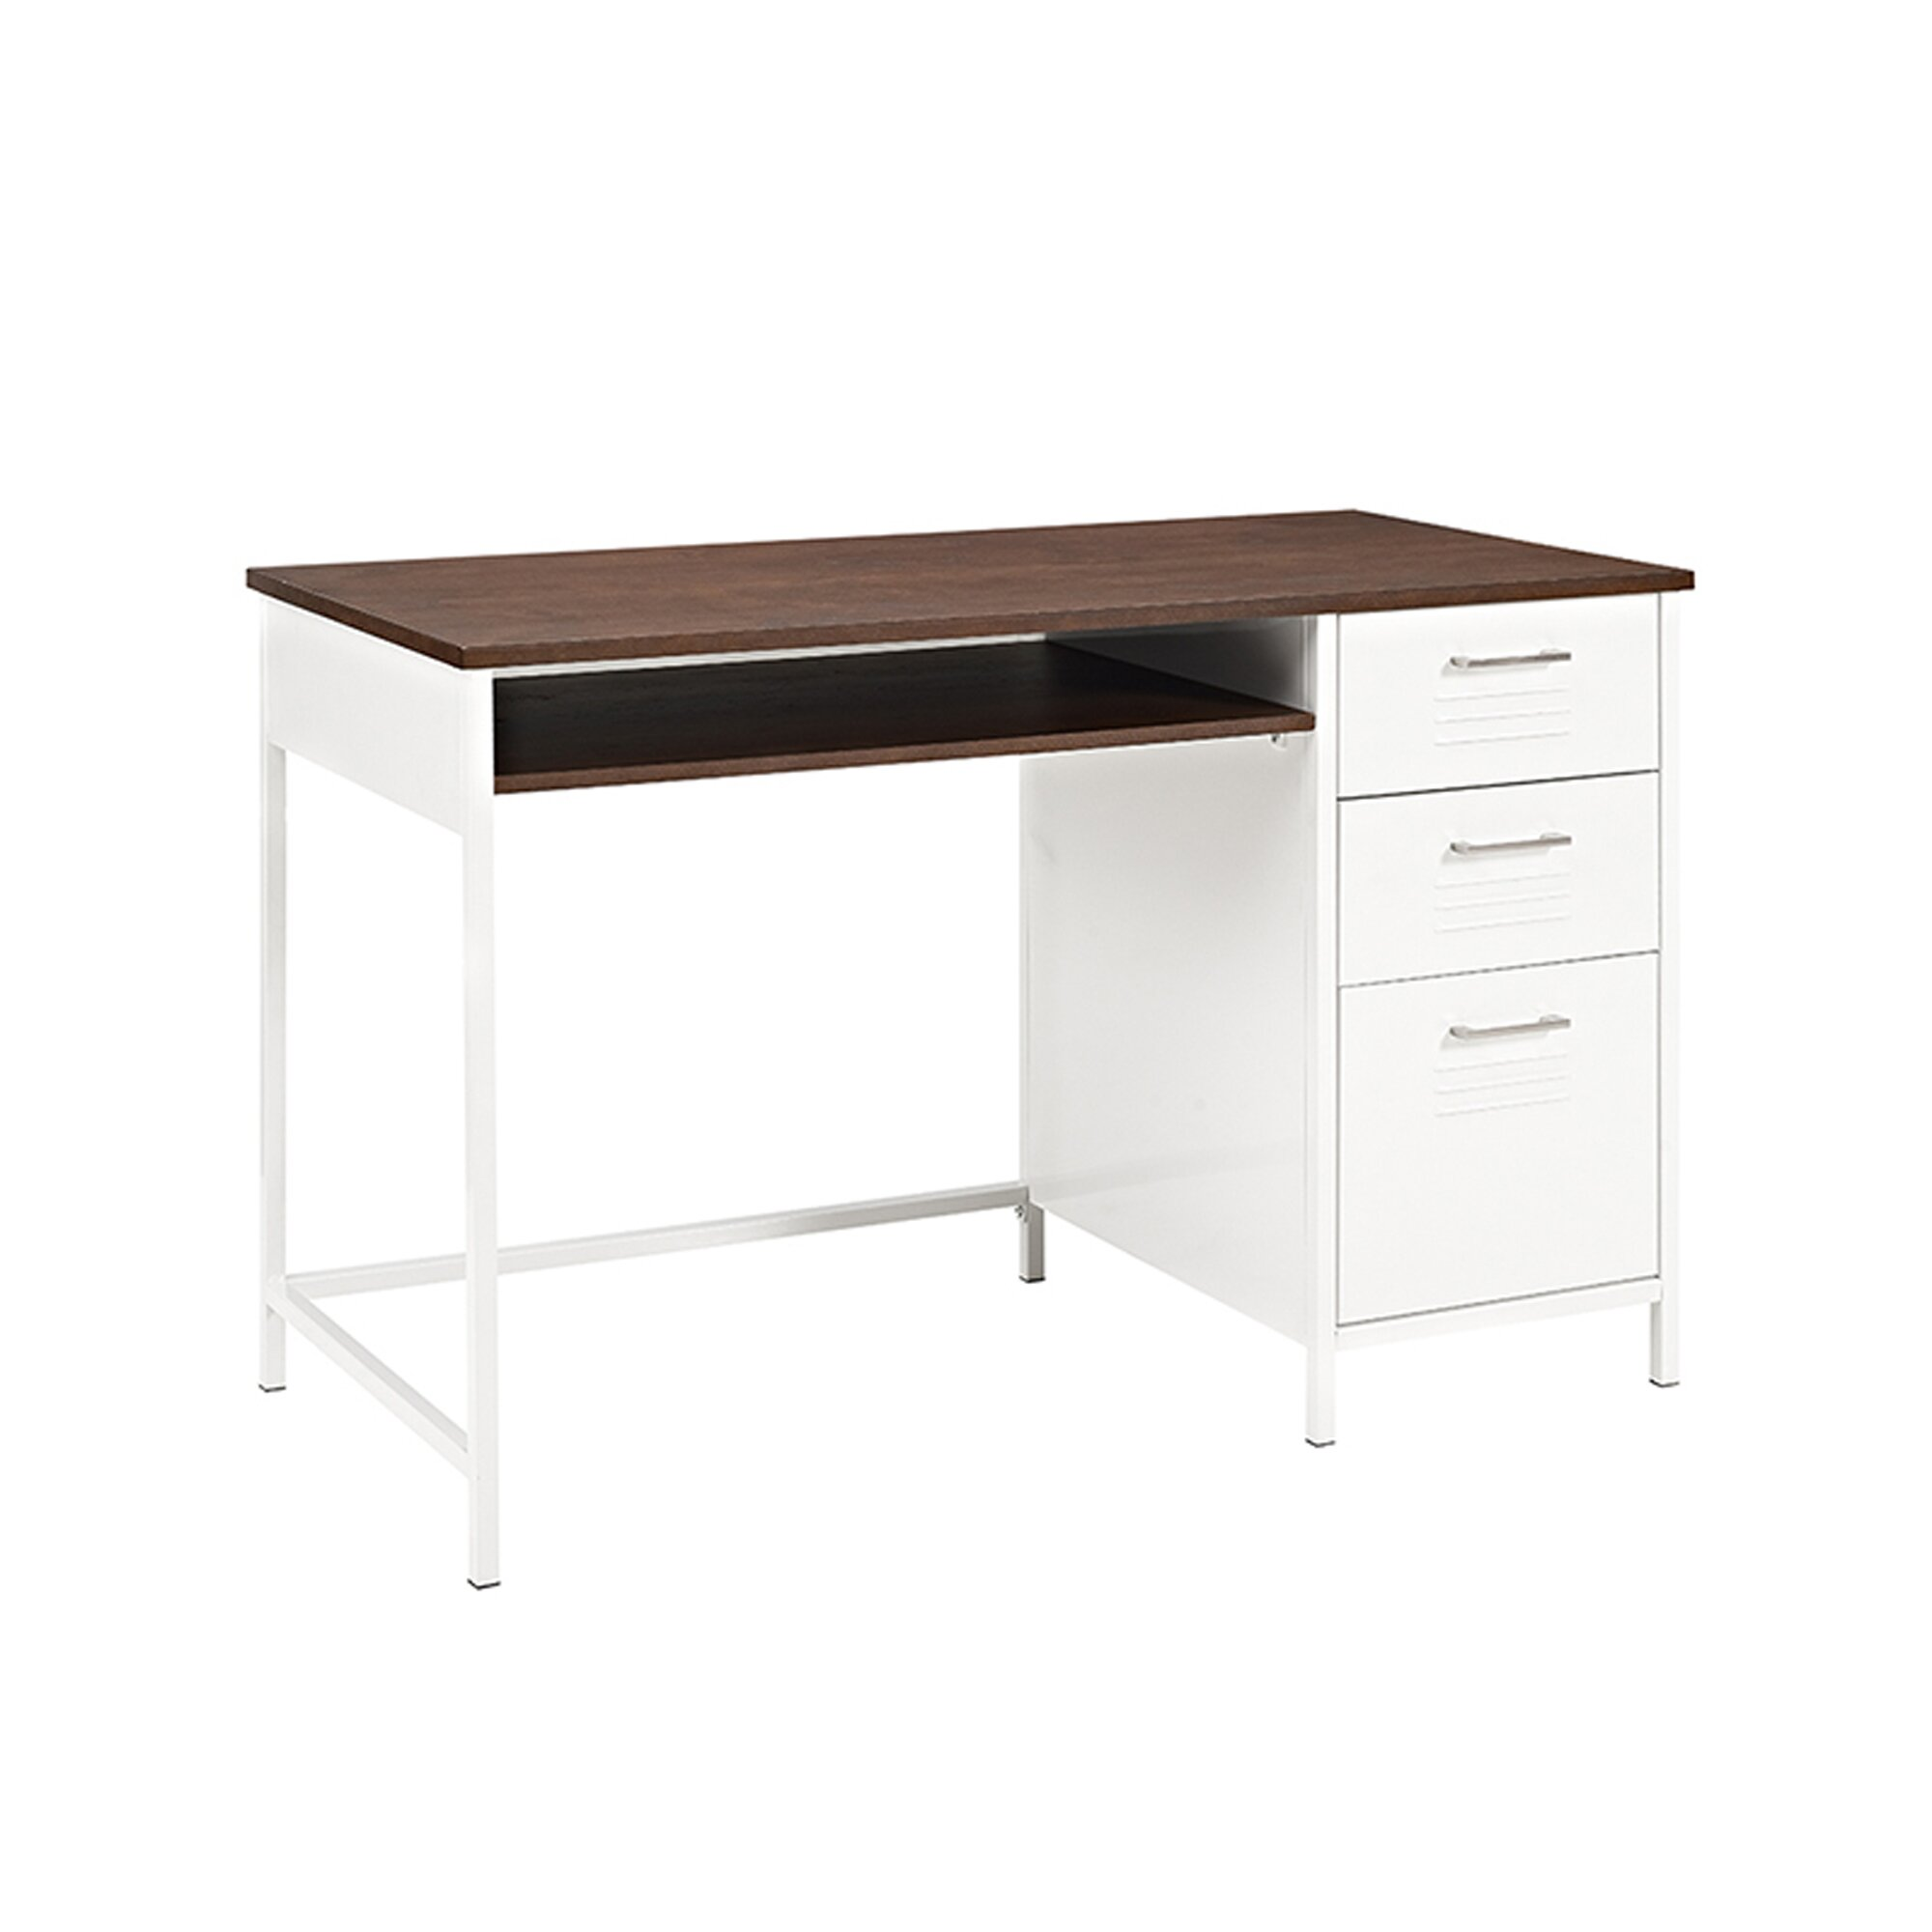 Marlee metal locker style computer desk with wood top for Metal desk with wood top